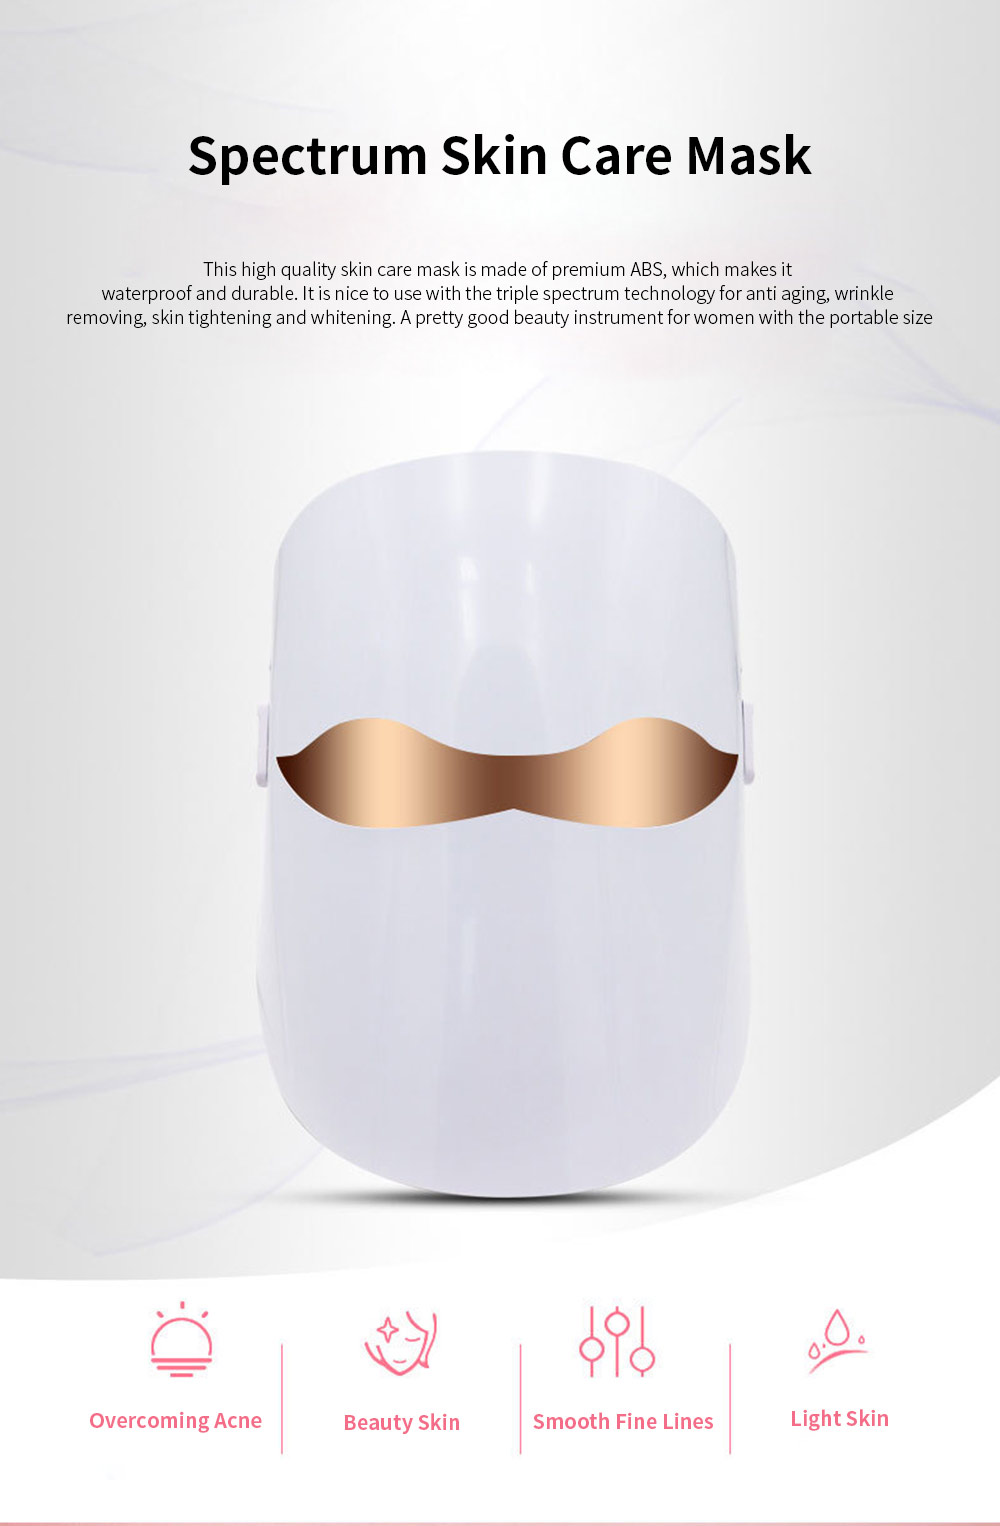 Spectrum Skin Care Mask 32 LED Face Mask with Triple Spectrum Technology for Skin Care Anti Aging Skin Tightening 0